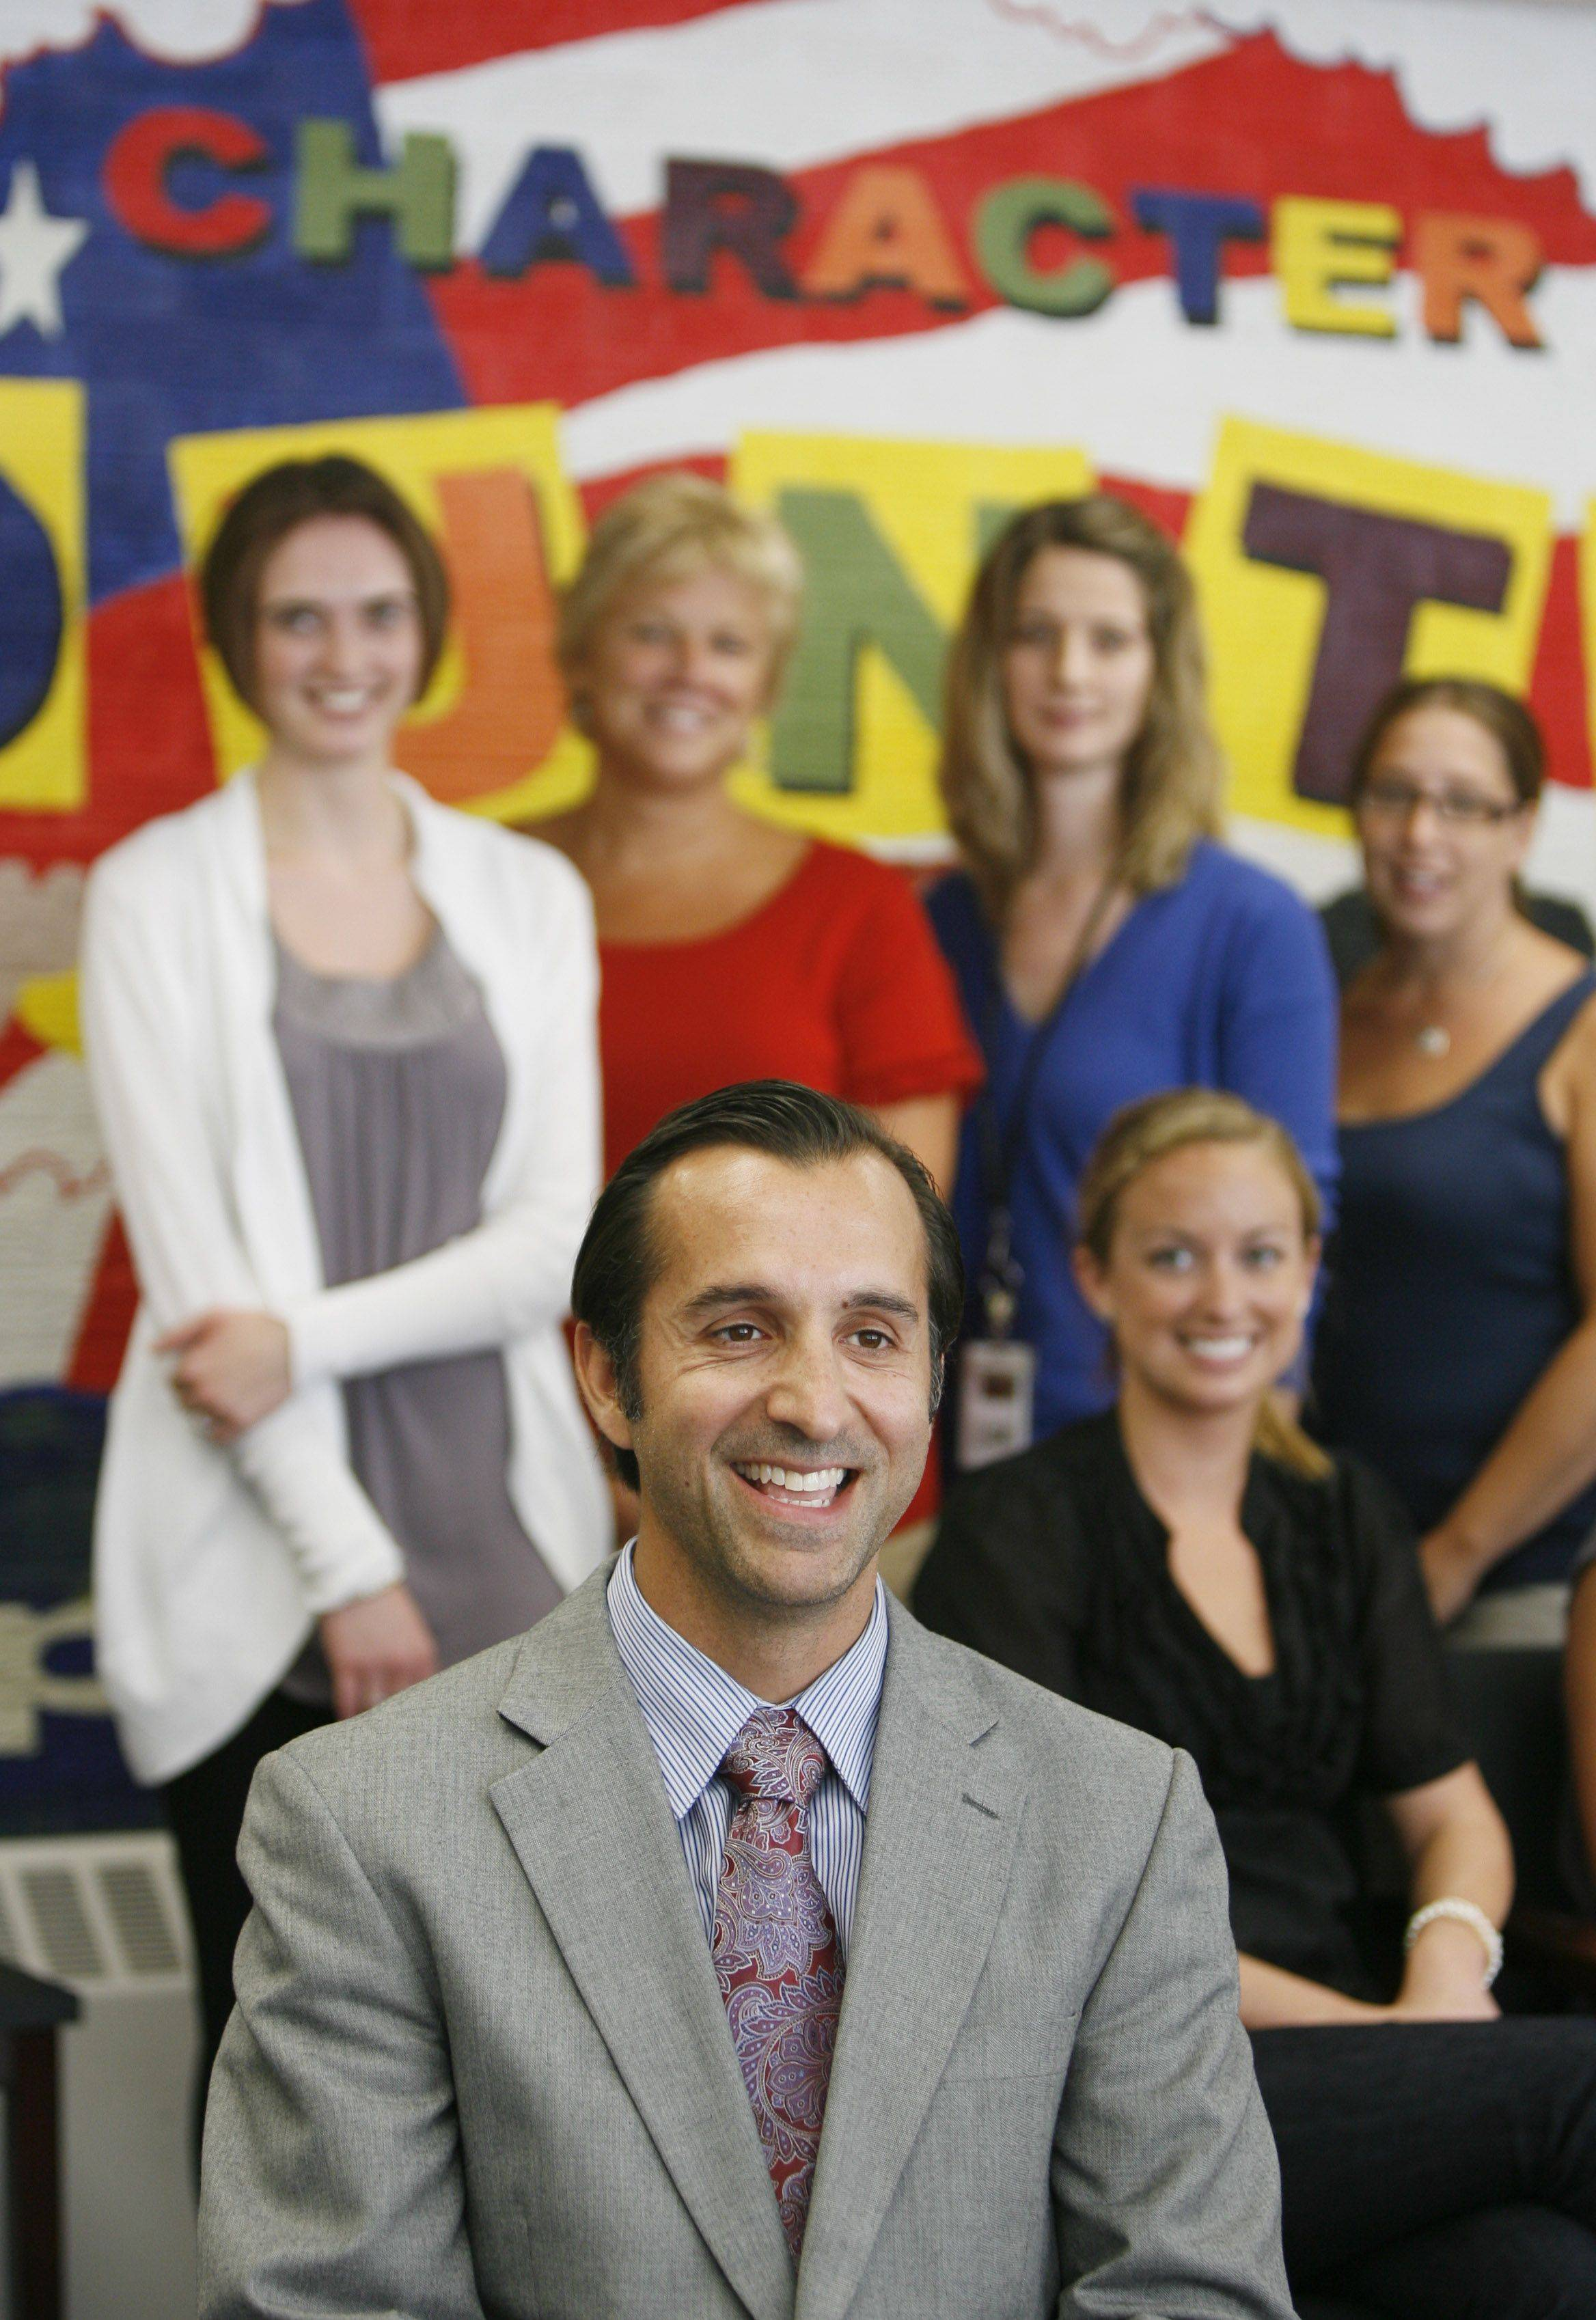 Principal Scott Kaese heads a social and emotional learning program at Spring Hills School in Roselle. Members of the committee, shown behind Kaese, are Erica Gresk, Sue Hauschildt, Ashley Bianchi, Amy Salatino and Emily Izzo. Other committee members are: Diana Letsos, Debbie Burns, Vicki Harms, Julie Miller, Jolene Hocher and Nicole Majewski.